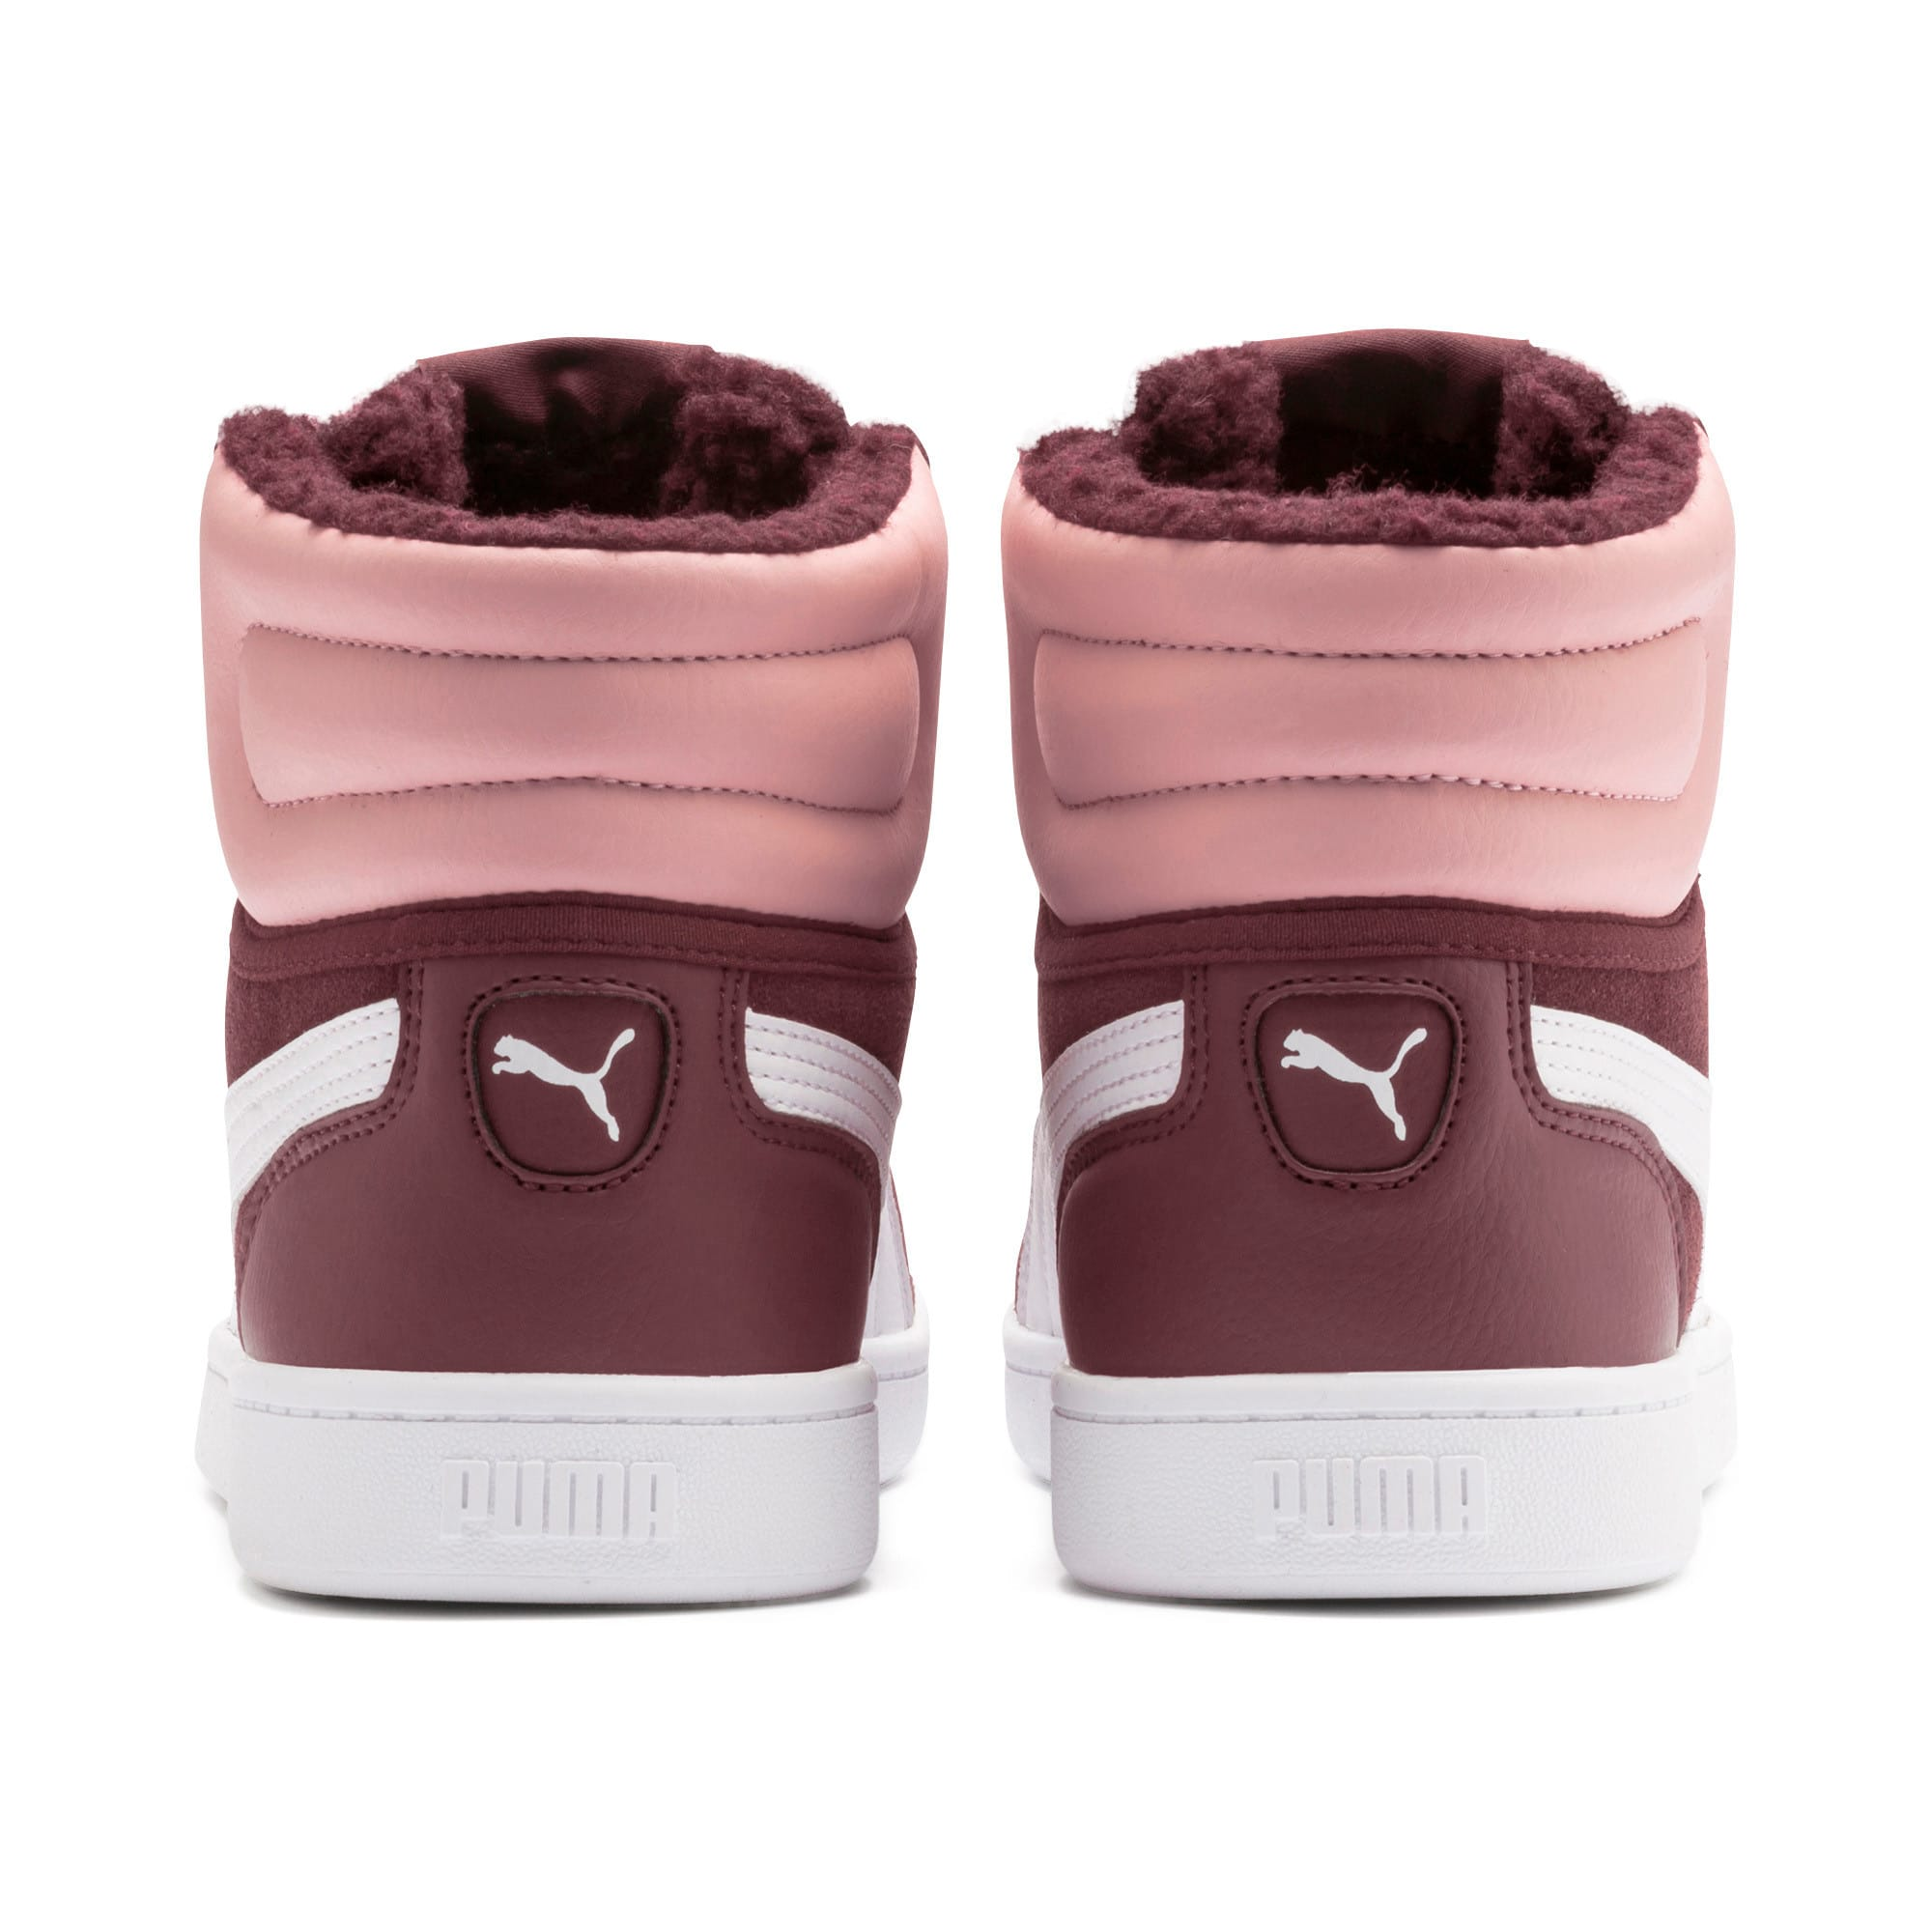 Vikky v2 Mid Fur Youth Trainers, Vineyard Wine-B Rose-White, large